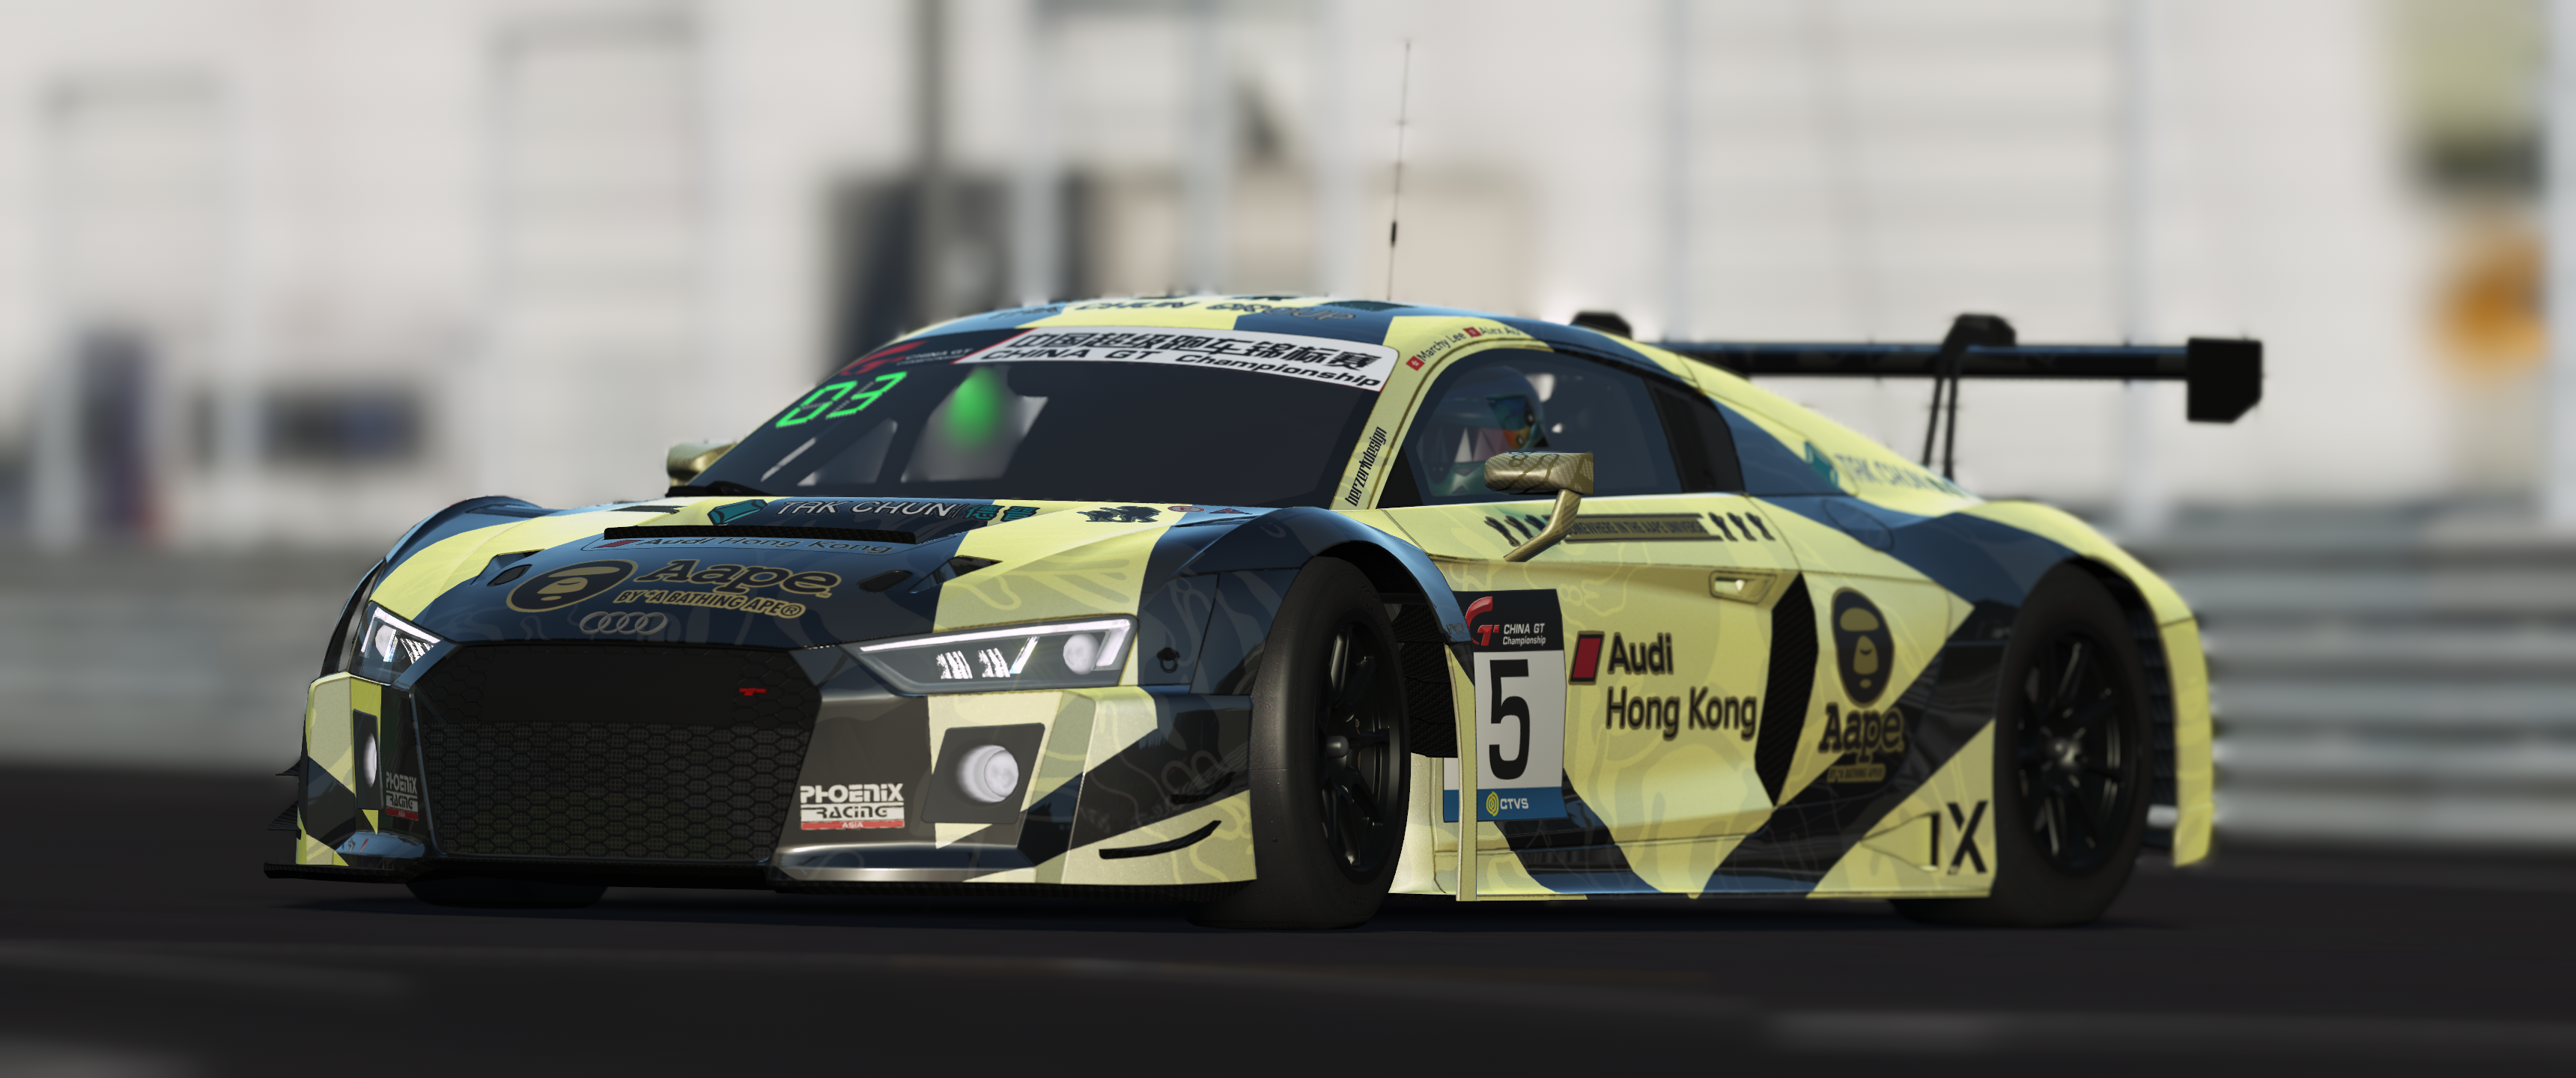 rFactor2 2019-03-02 02-01-17-52.png